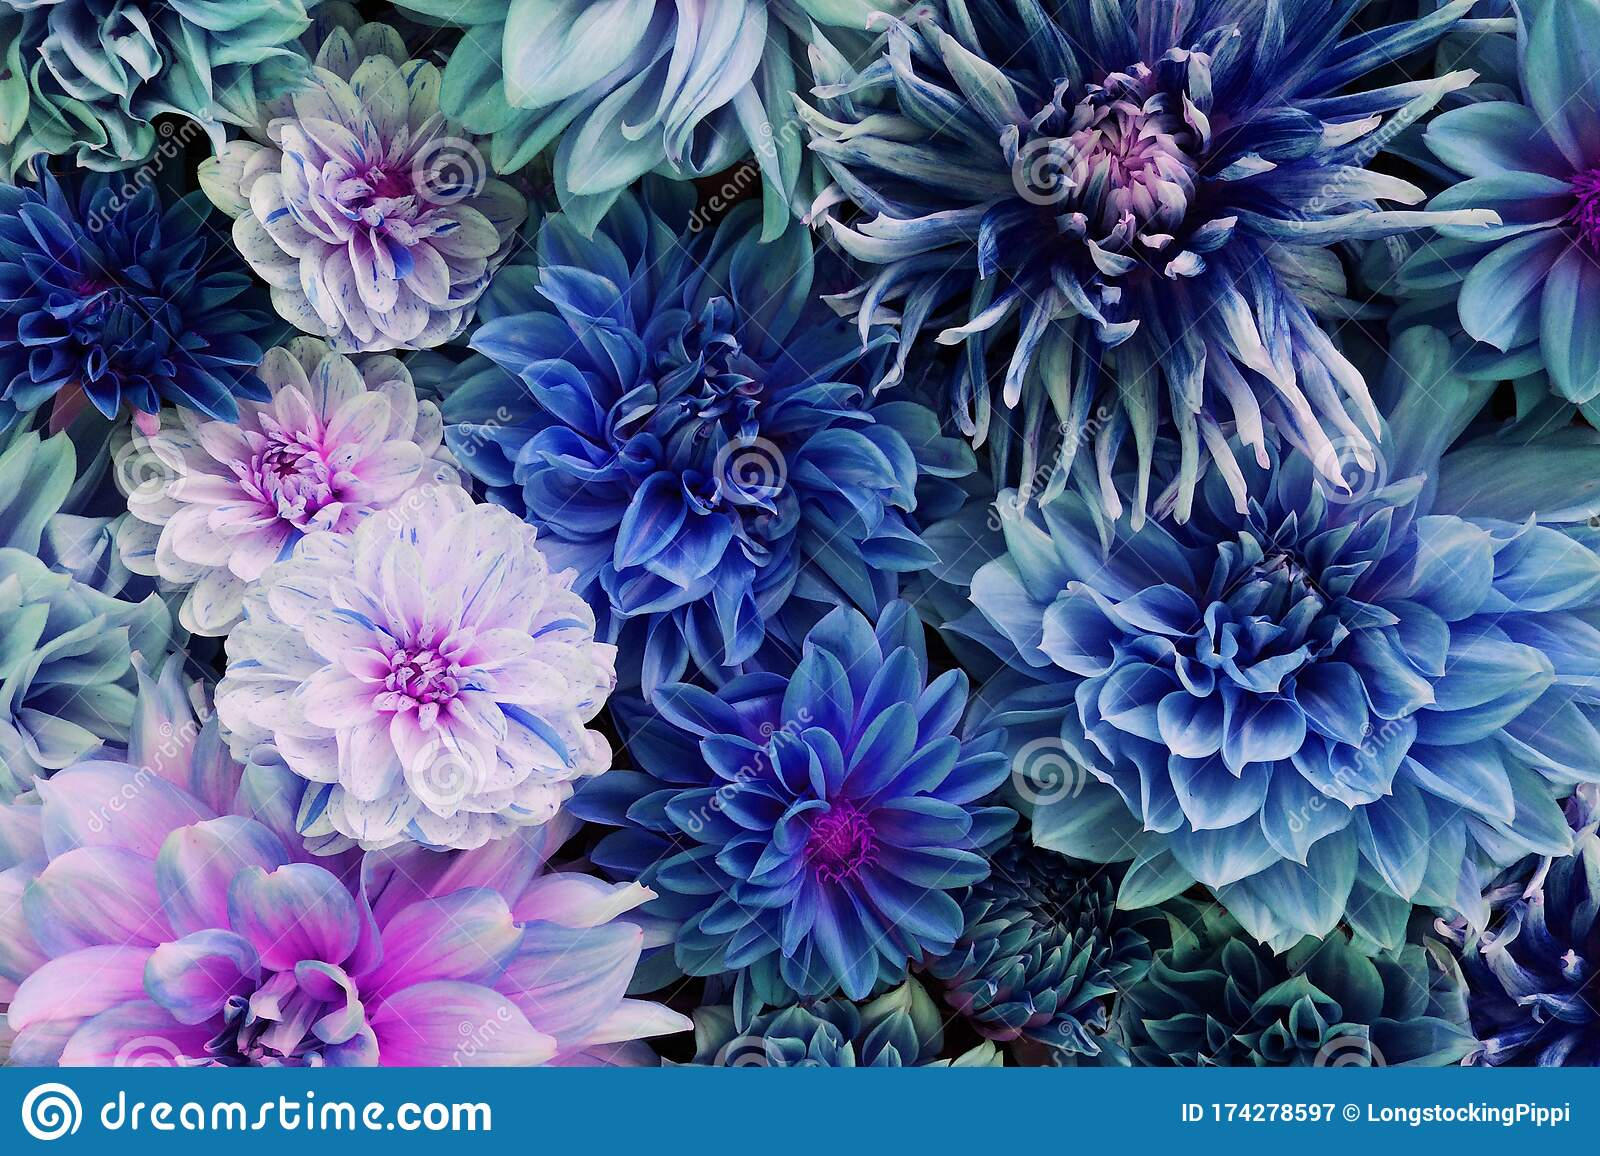 Beautiful Fresh Colorful Blue And Purple Dahlia Flowers In Full Bloom Stock Image Image Of Bouquet Card 174278597